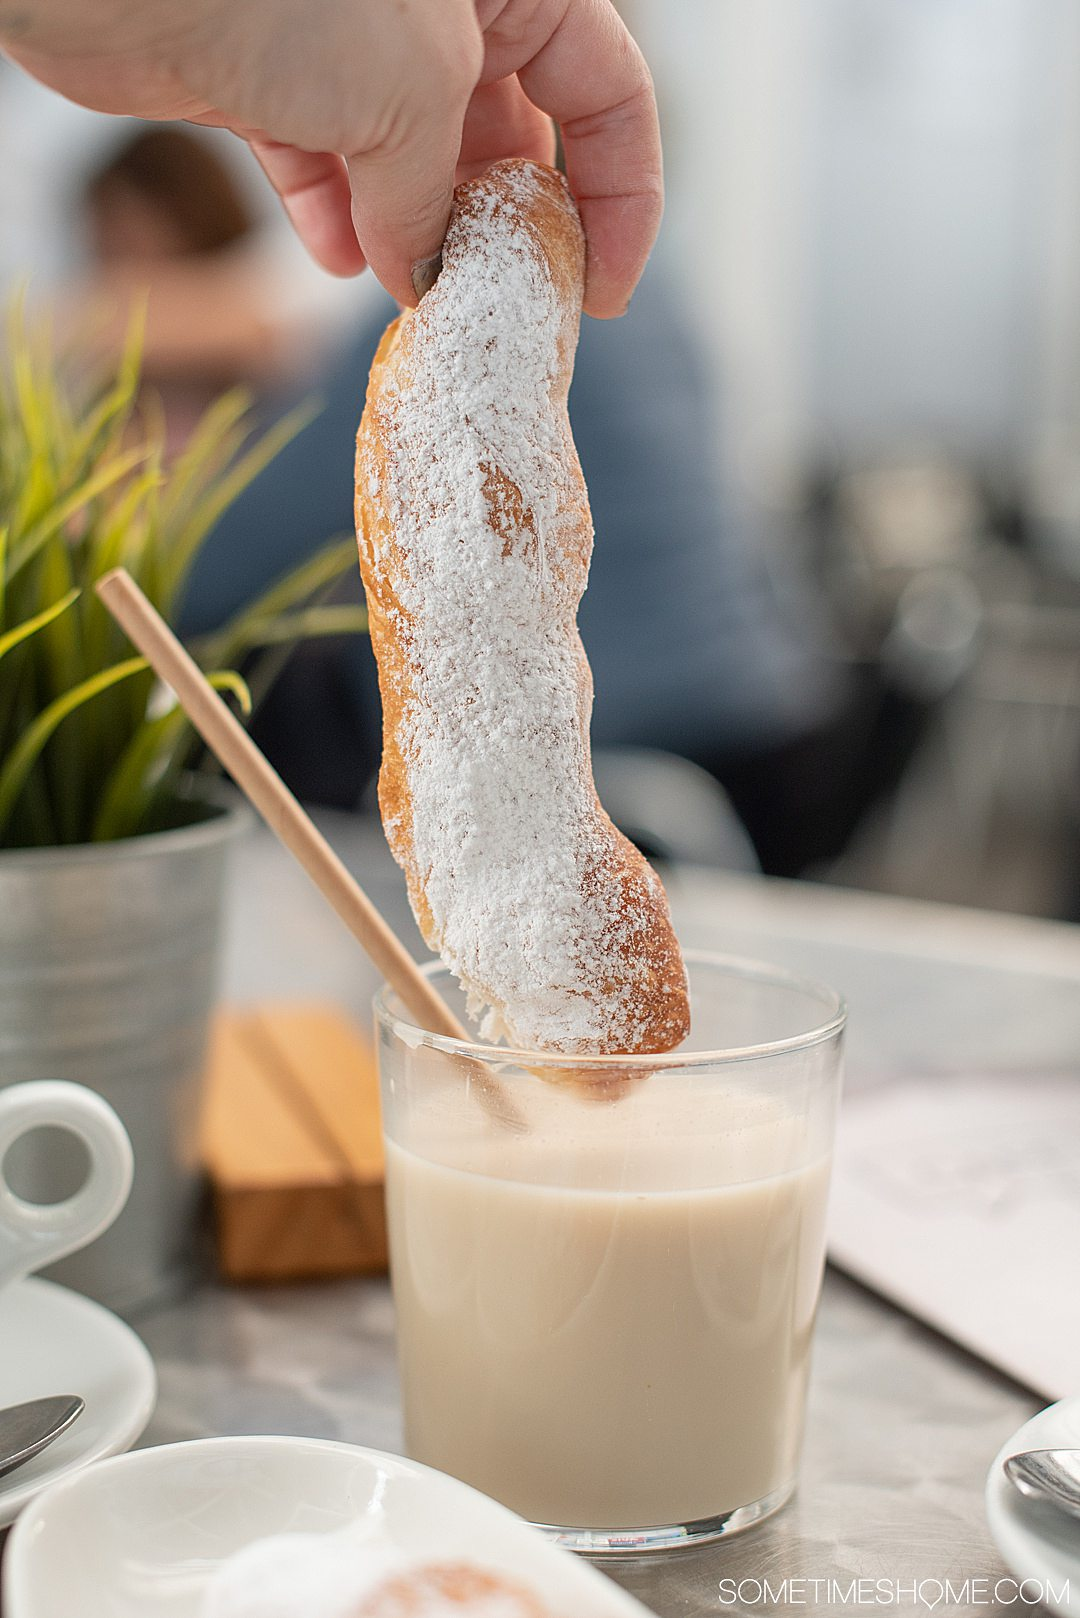 Glass of horchata, a typical Valencian drink, and pastry.